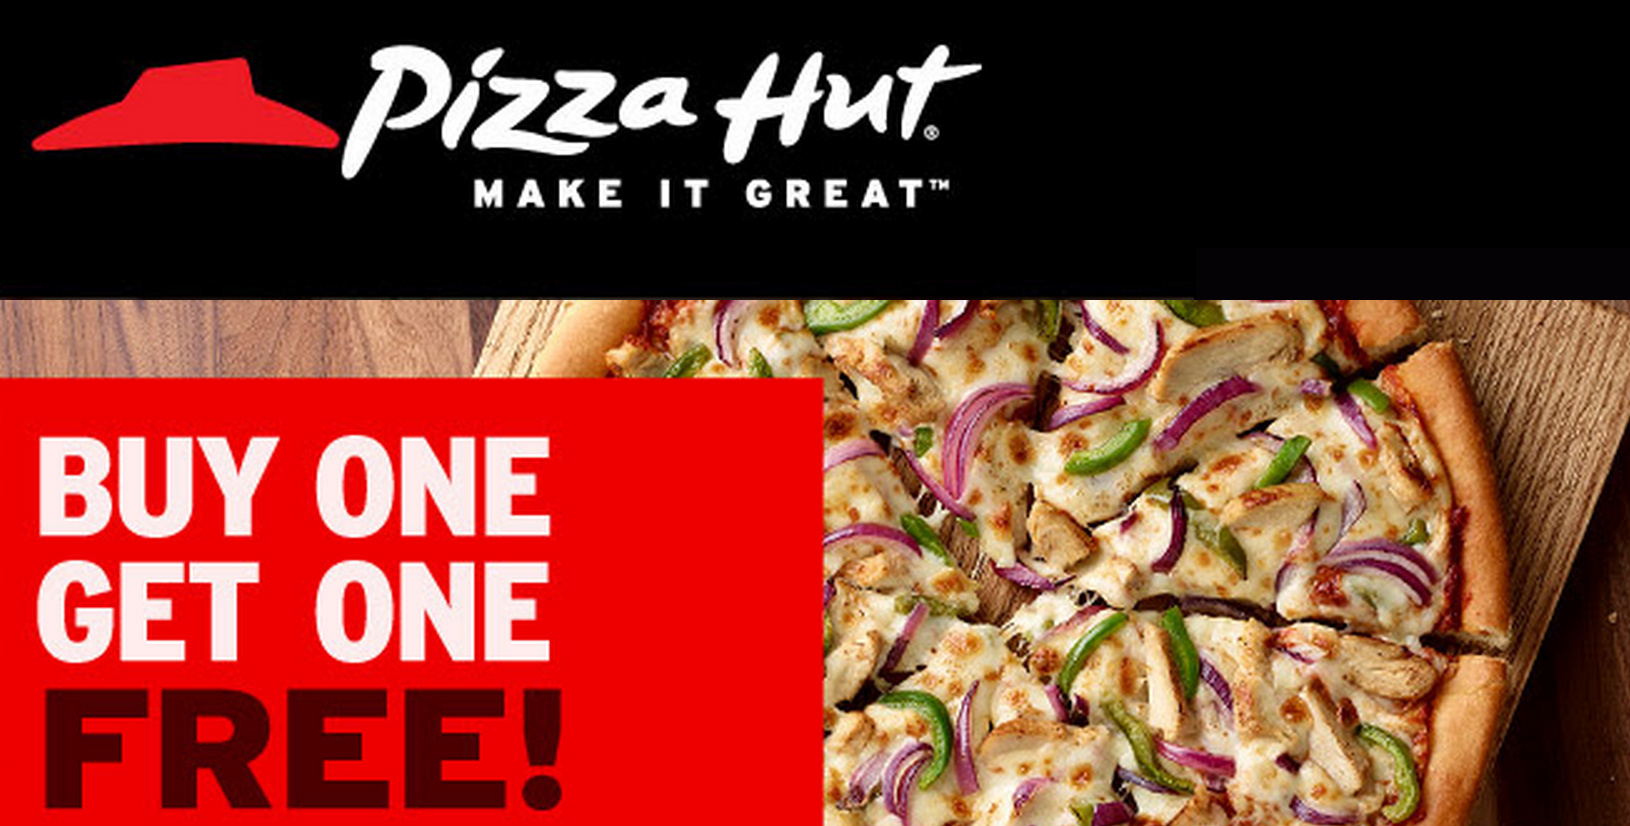 Pizza hut canada deals june 2018